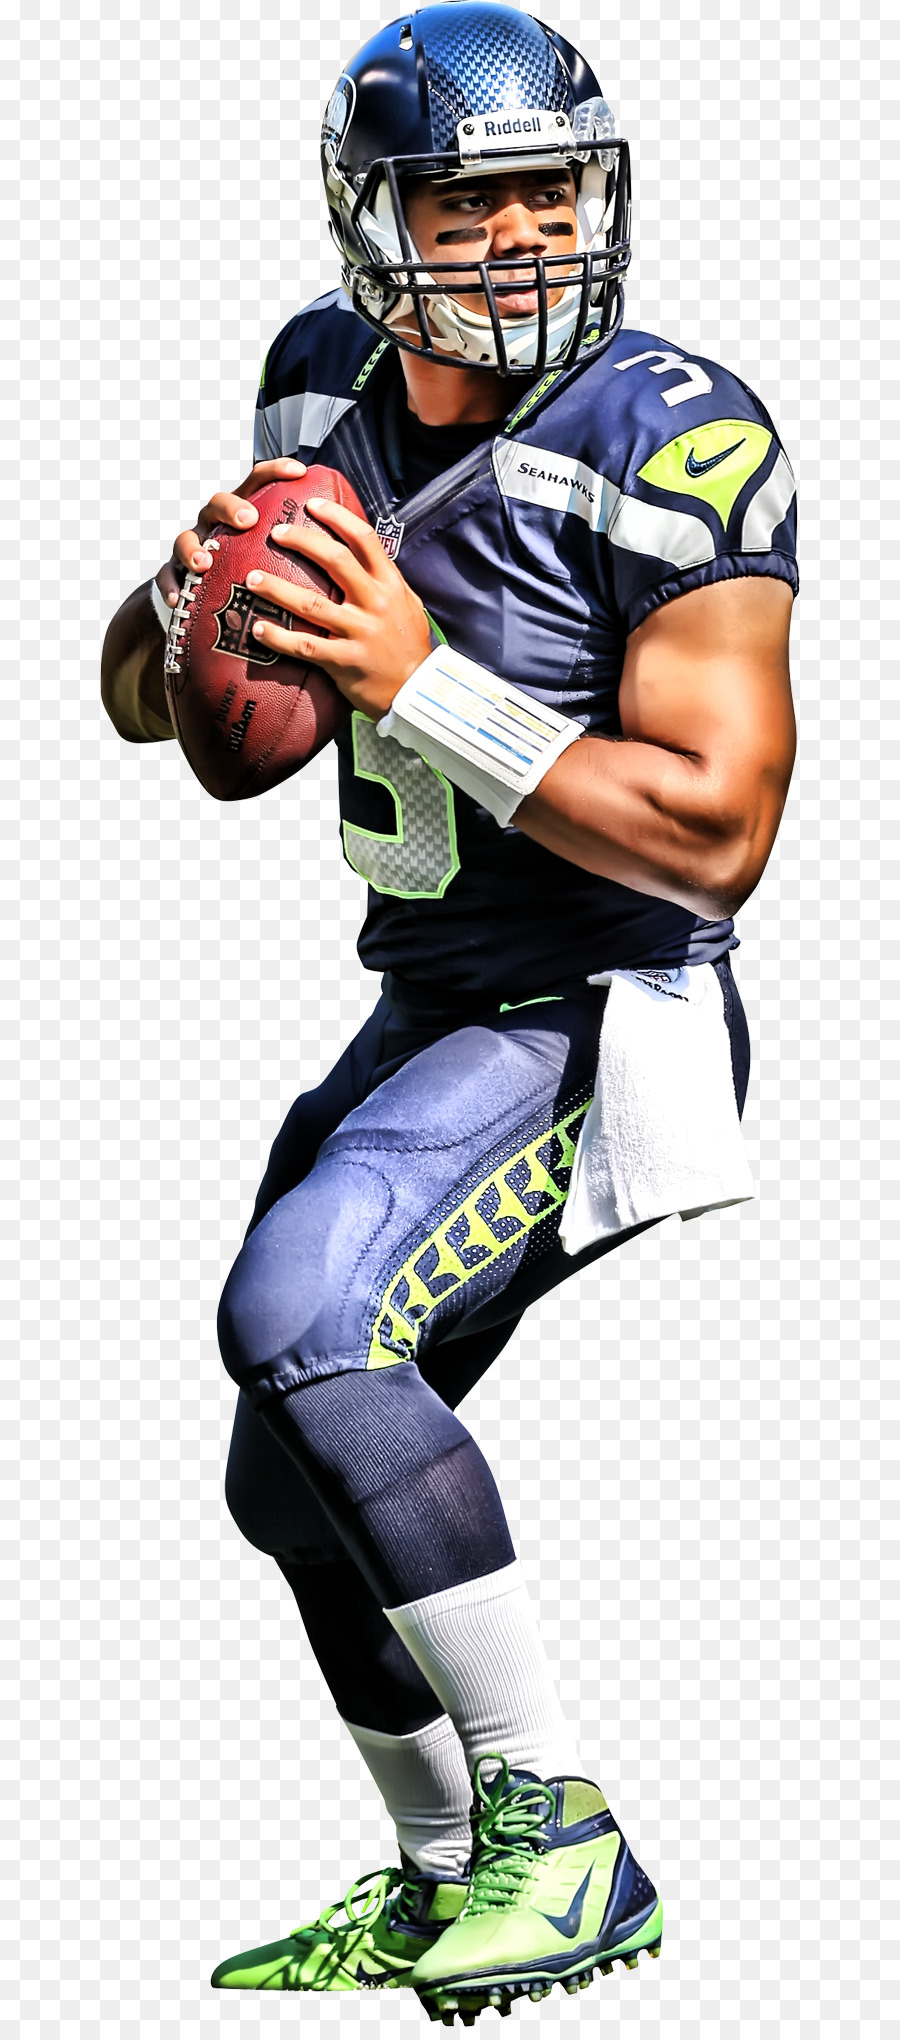 russell wilson png clipart American football Face mask Seattle Seahawks